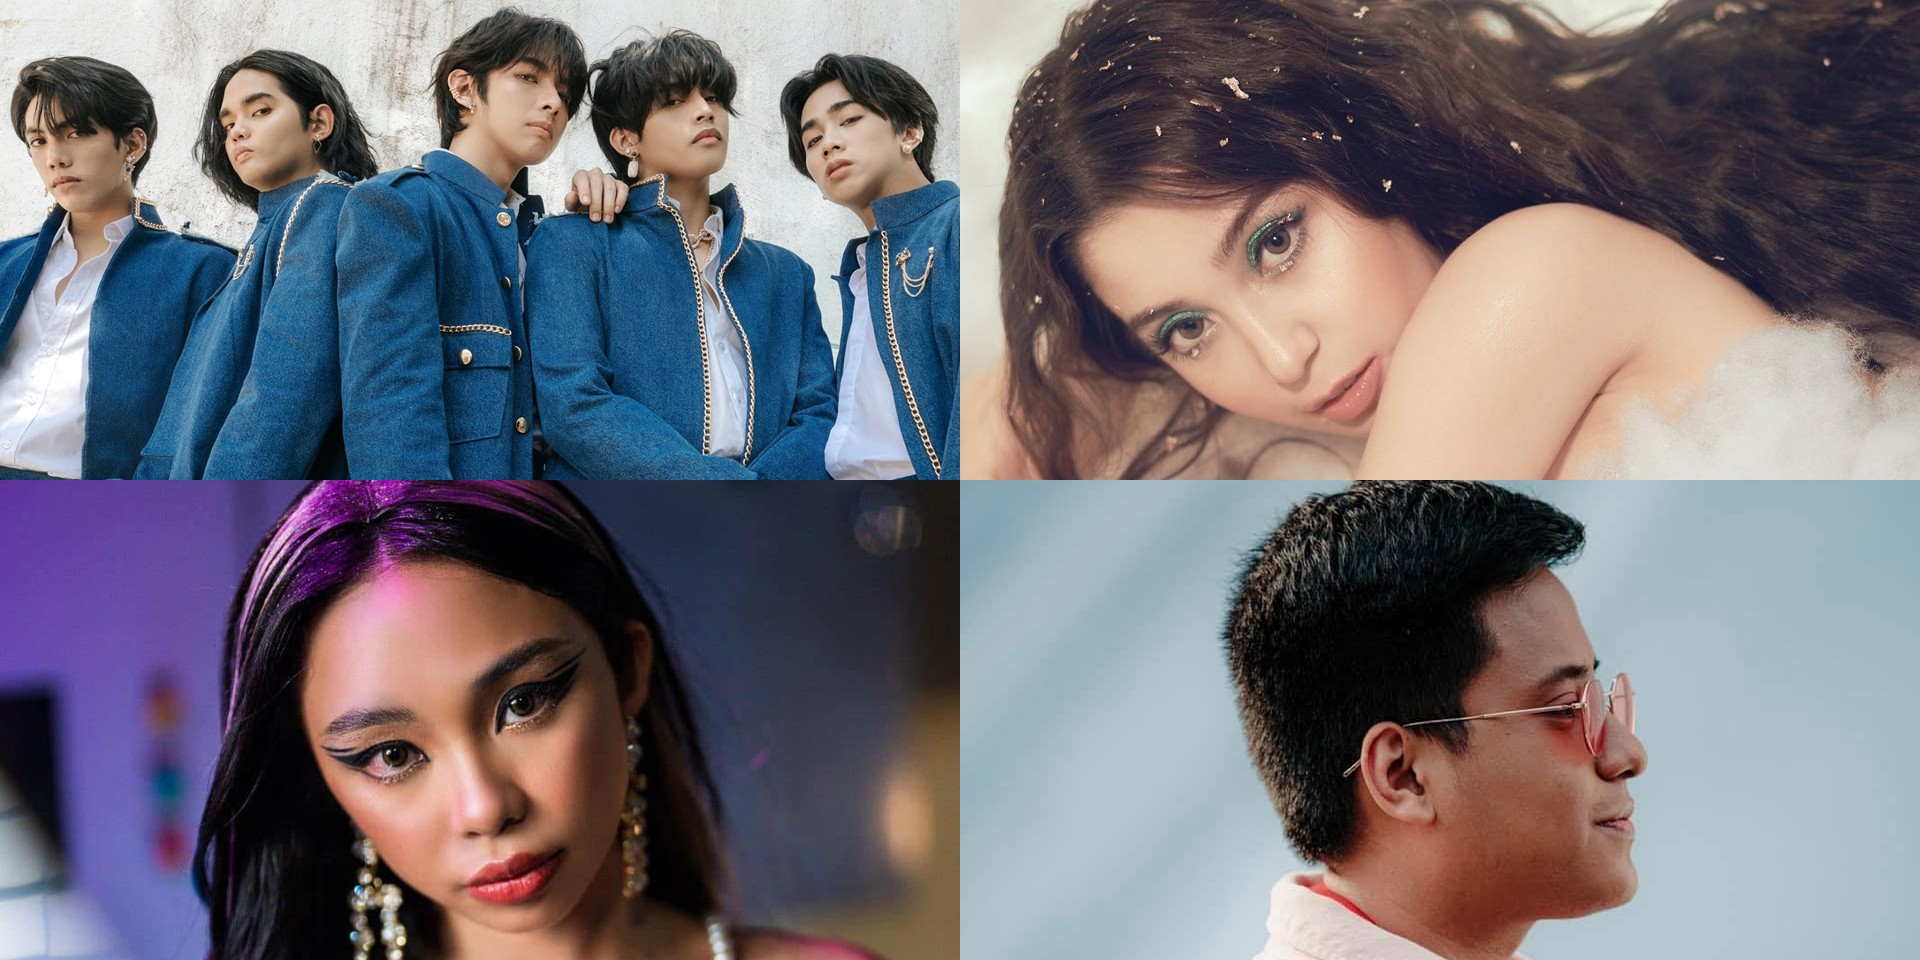 Here are the finalists of the TikTok Awards Philippines 2021 – SB19, Donnalyn Bartolome, Maymay Entrata, Matthaios, and more